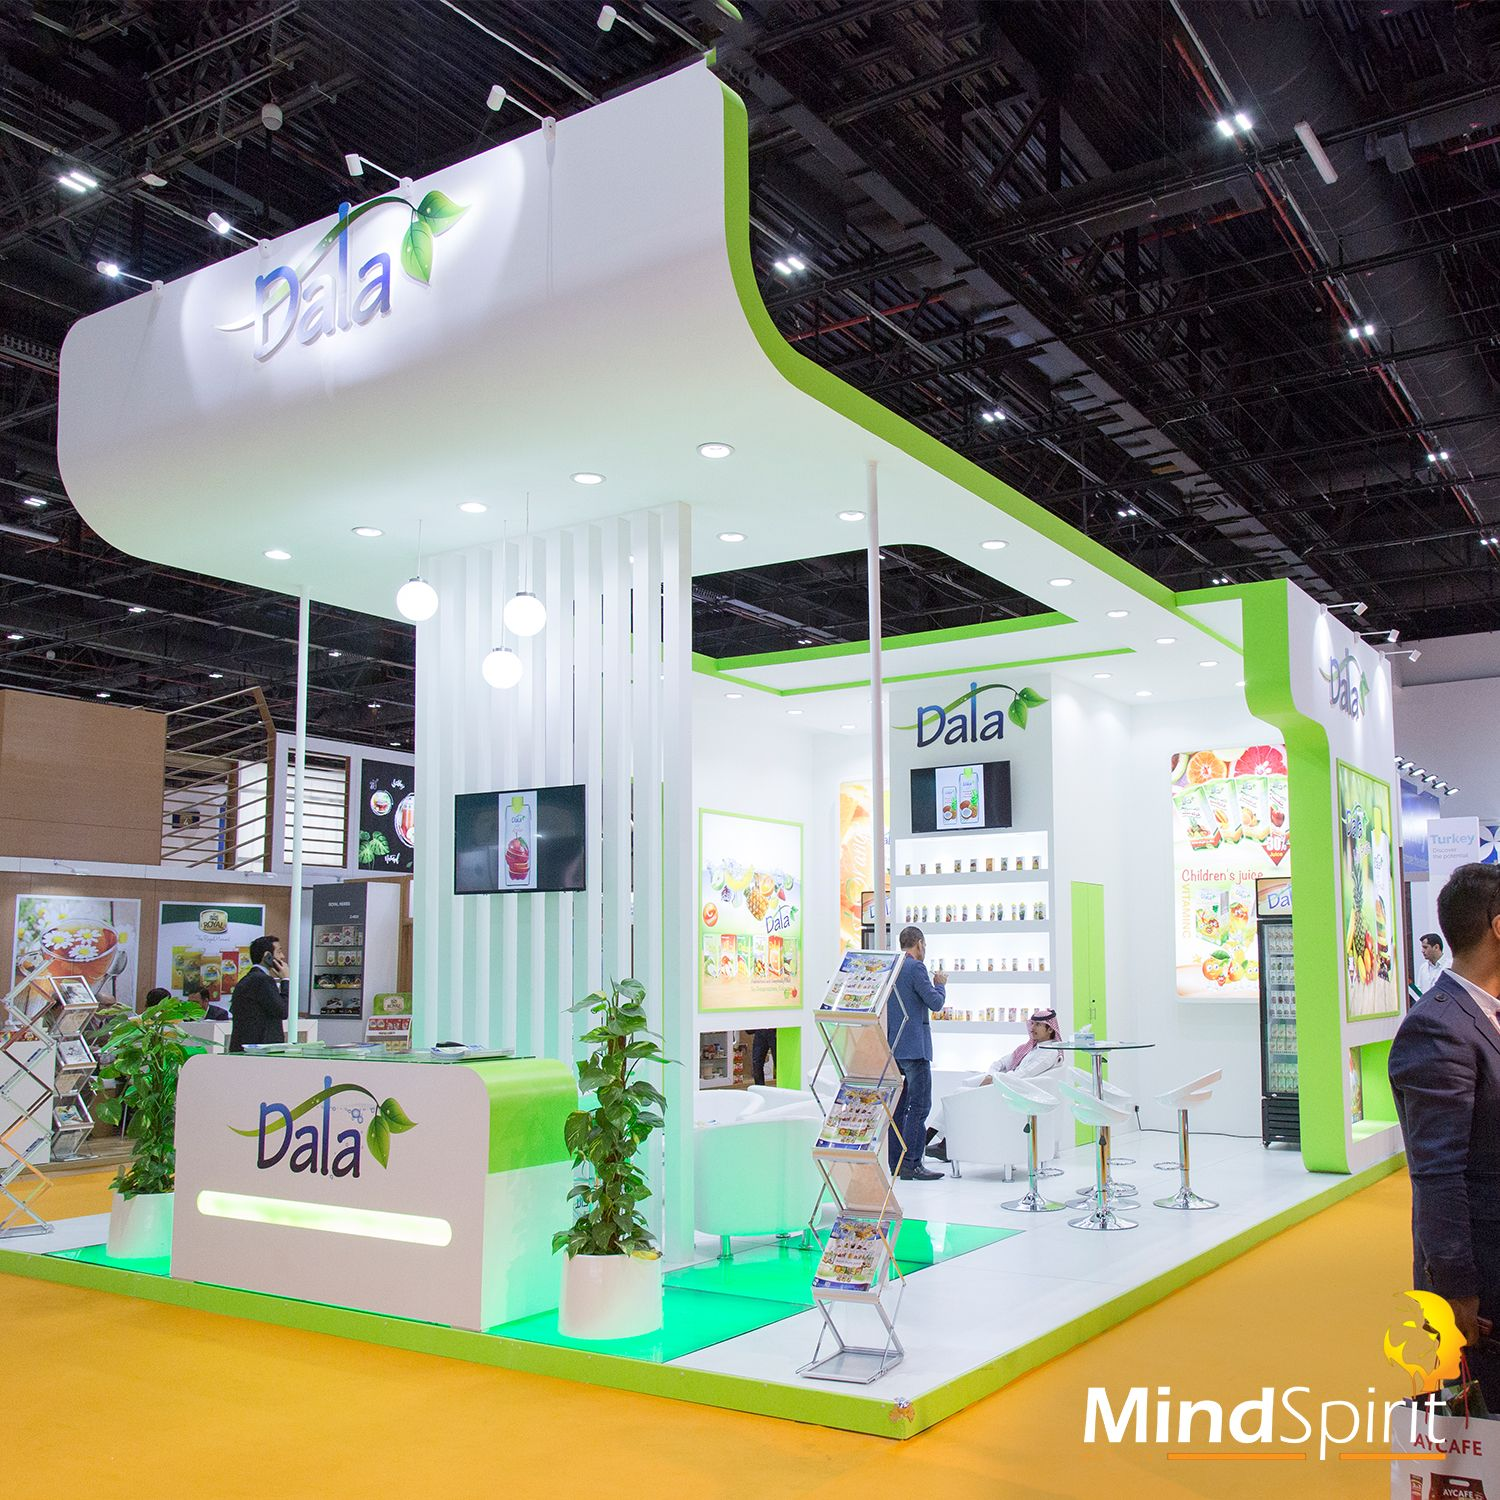 Gulfood 2018, Third Day For The World's Largest Annual